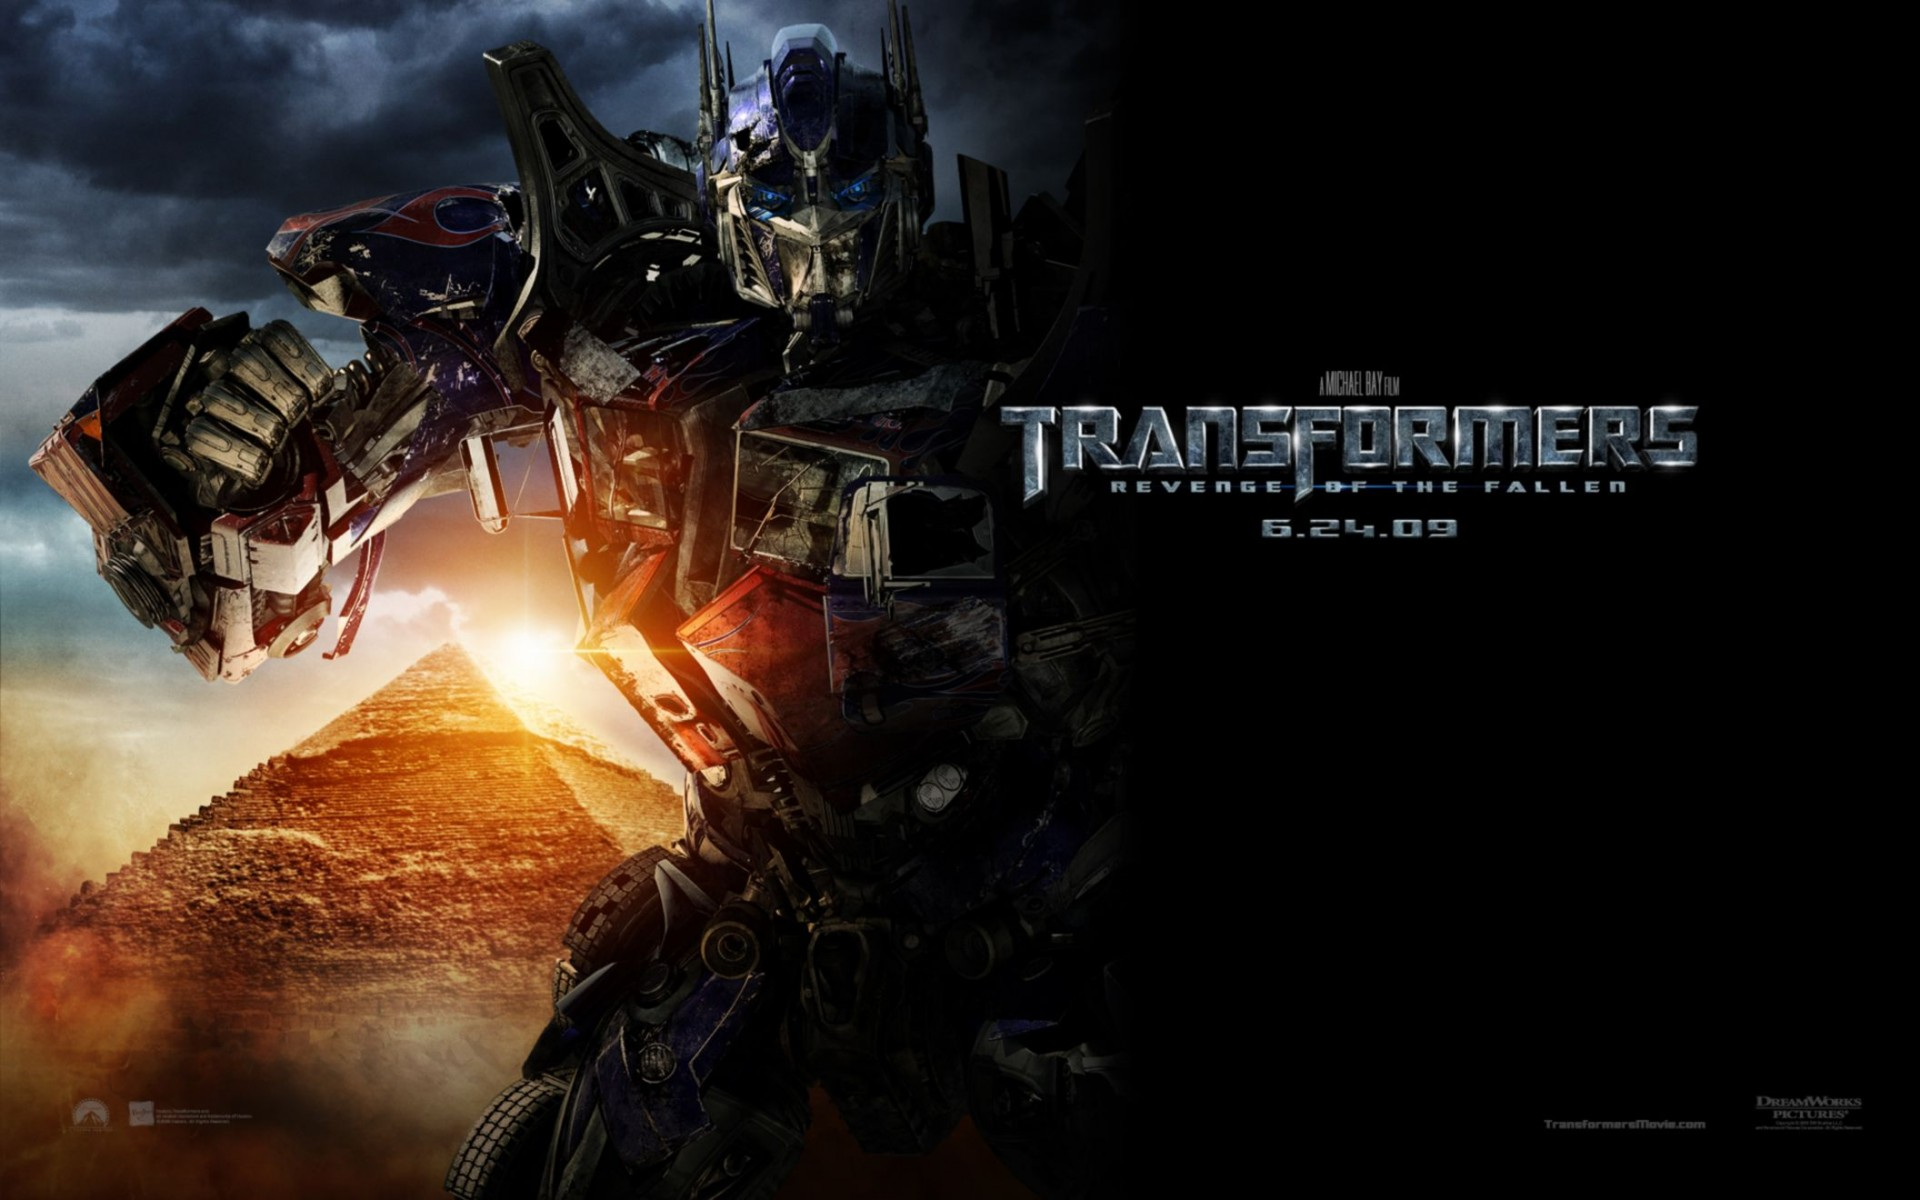 Transformers 2 Revenge of The Fallen Wide Wallpaper